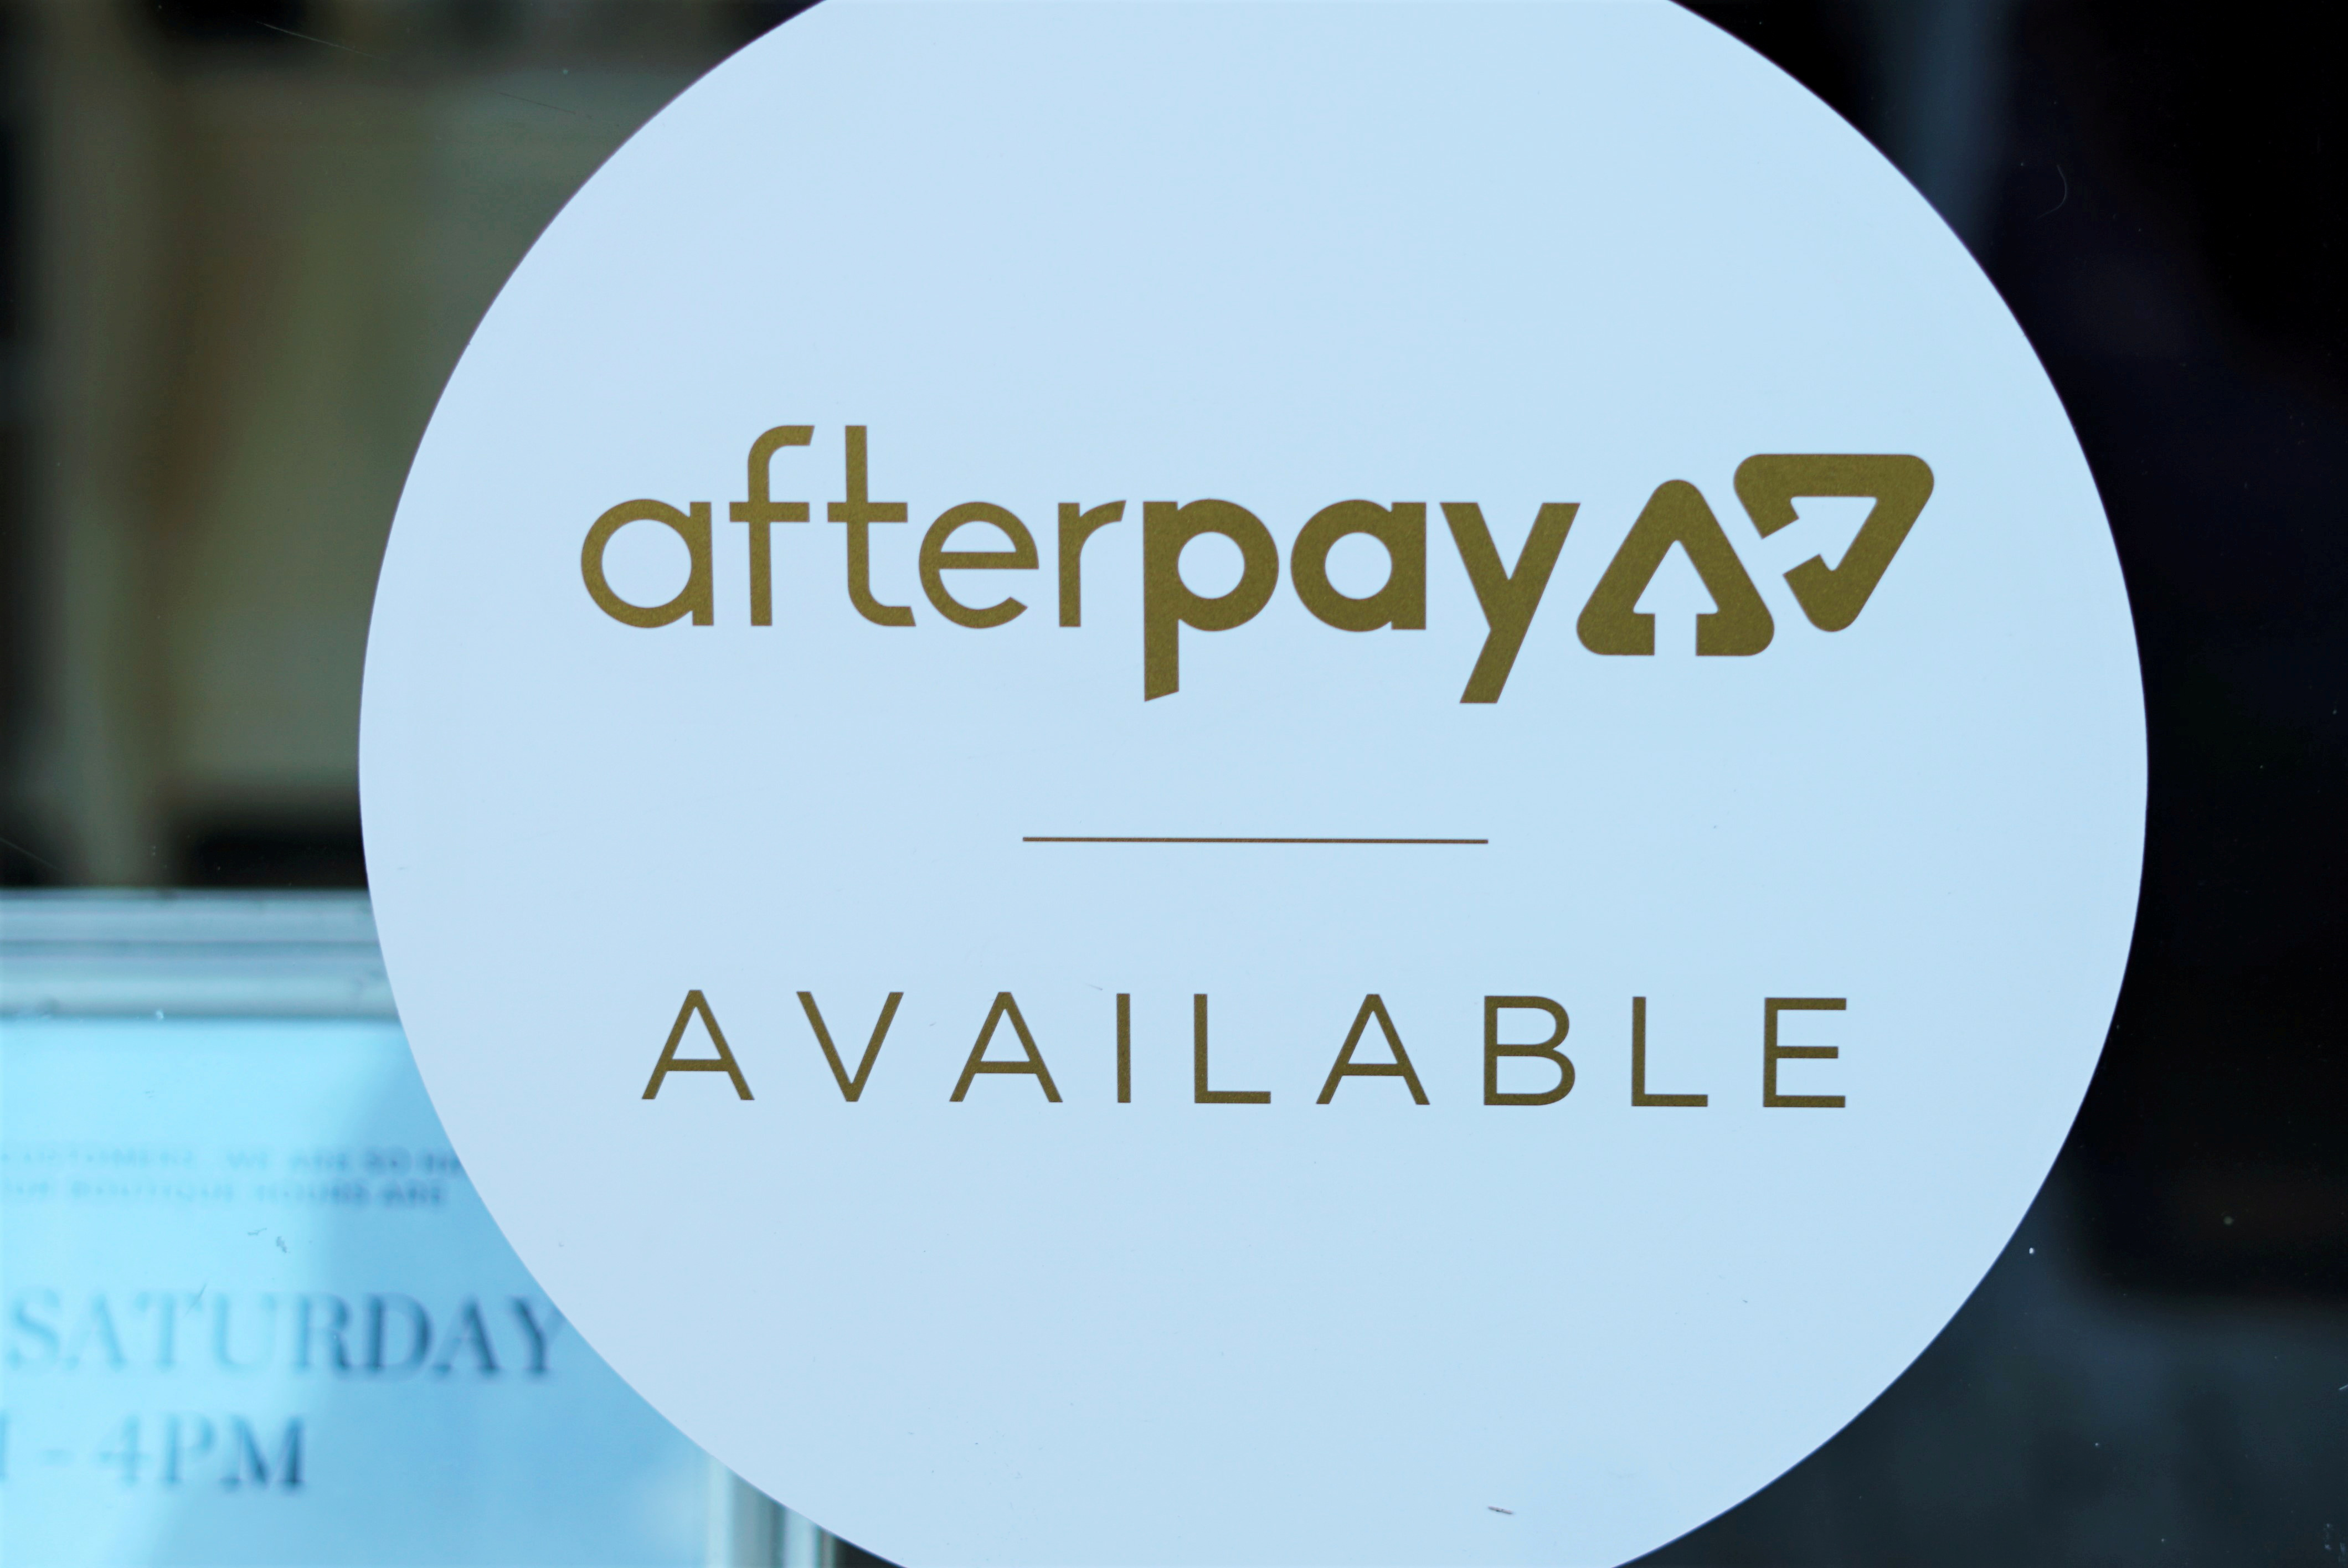 A logo for the company Afterpay is seen in a store window in Sydney, Australia, July 9, 2020.  REUTERS/Stephen Coates/File Photo